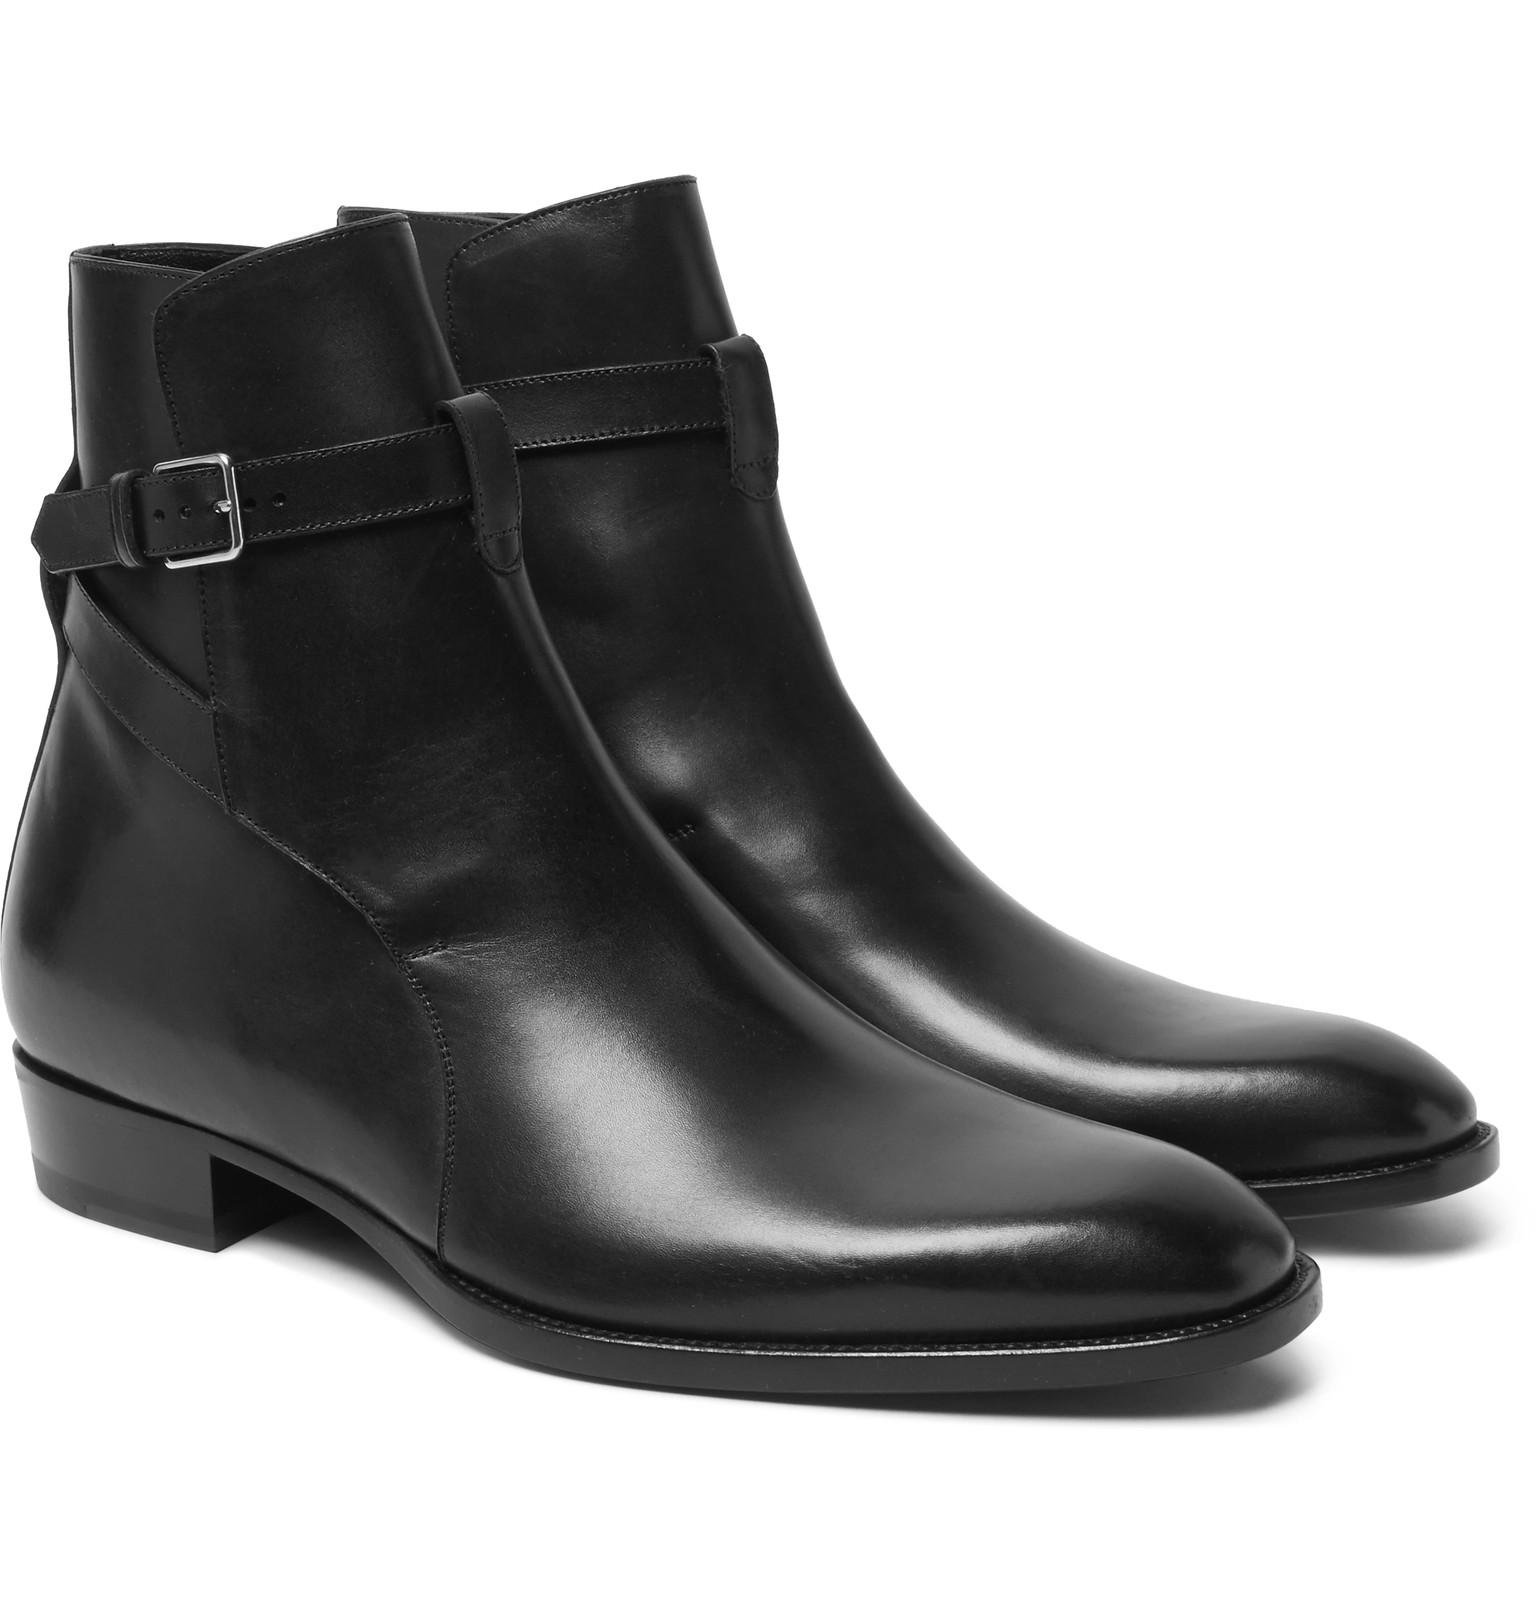 Saint Laurent Leather Jodhpur Boots In Black For Men Lyst